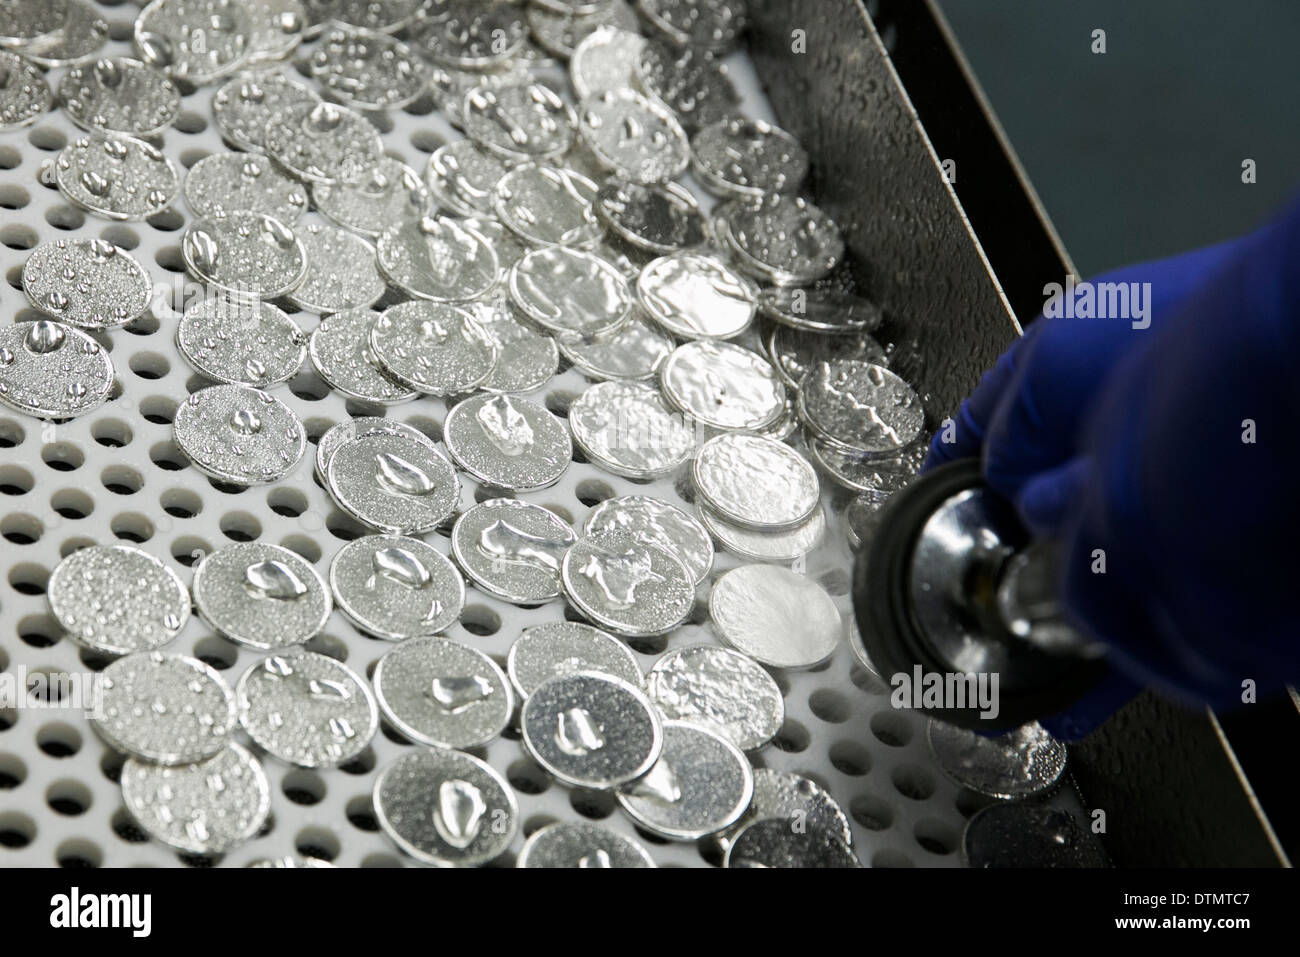 1 ounce Silver Eagle bullion and proof coin production at the West Point Mint. Coin blanks.  - Stock Image